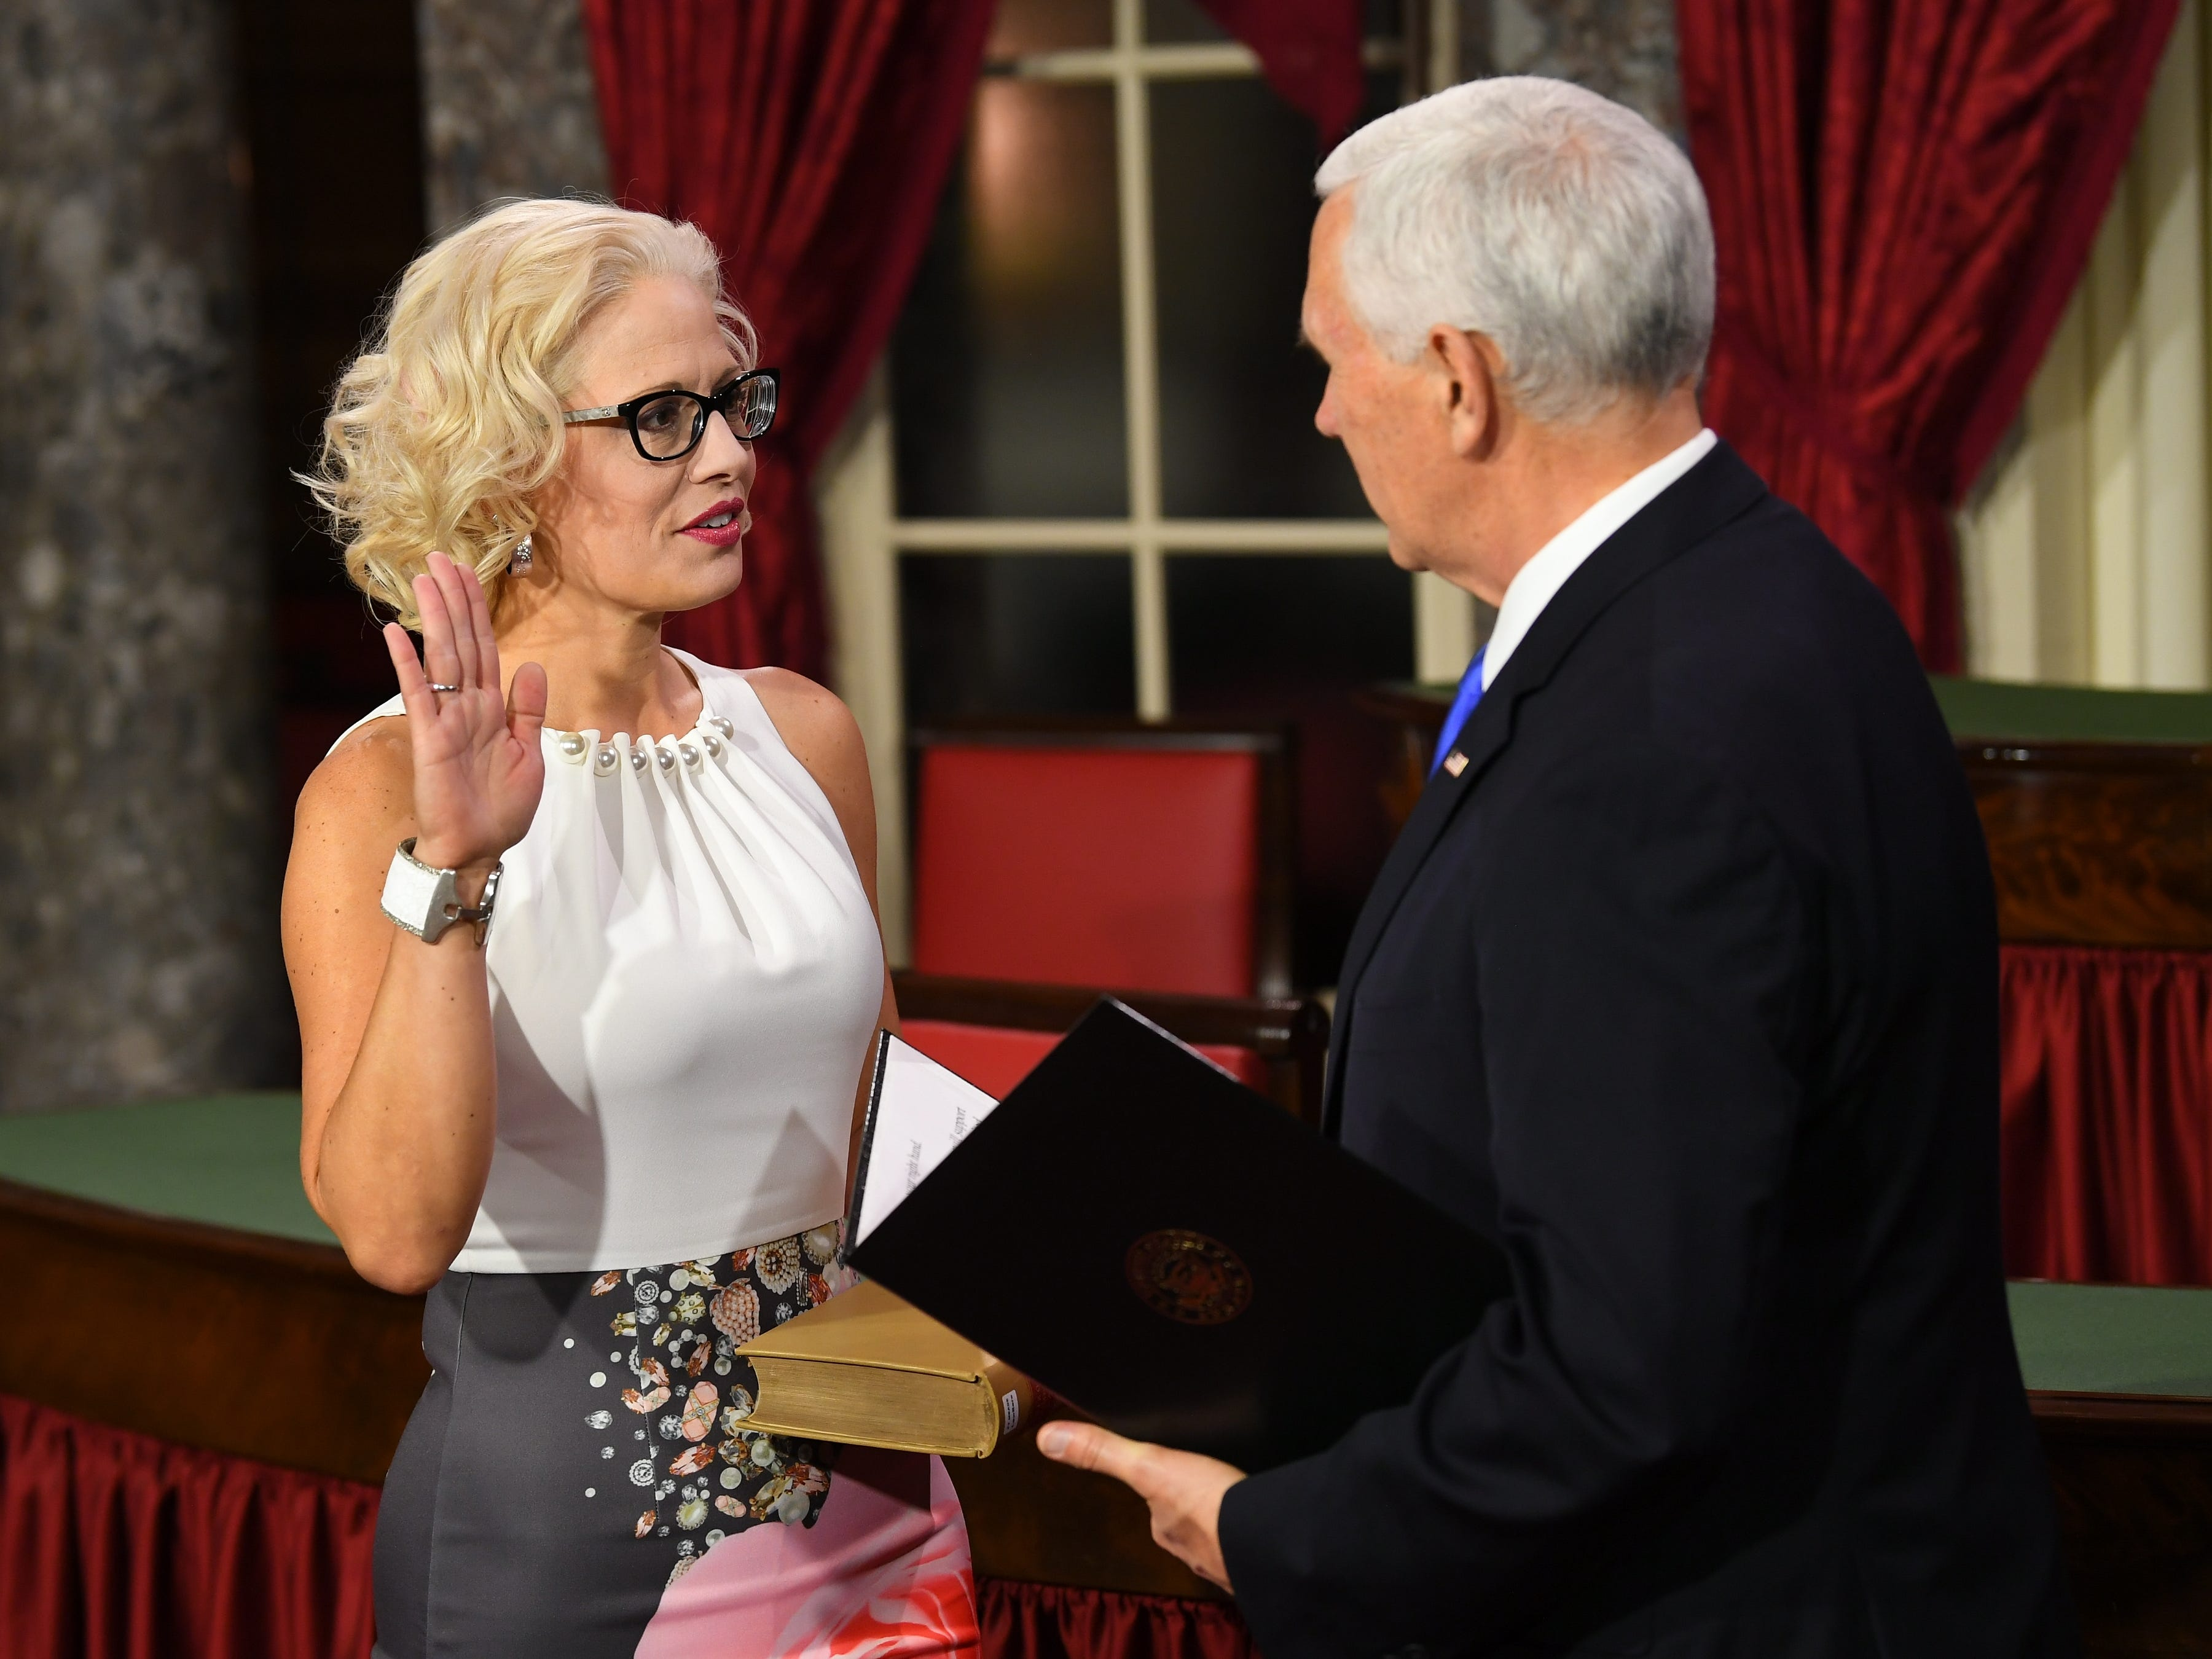 Vice President Mike Pence officiates ceremonial swearing of Senator Kyrsten Sinema, R.-Ariz., in the Old Senate Chambers at the U.S. Capitol.